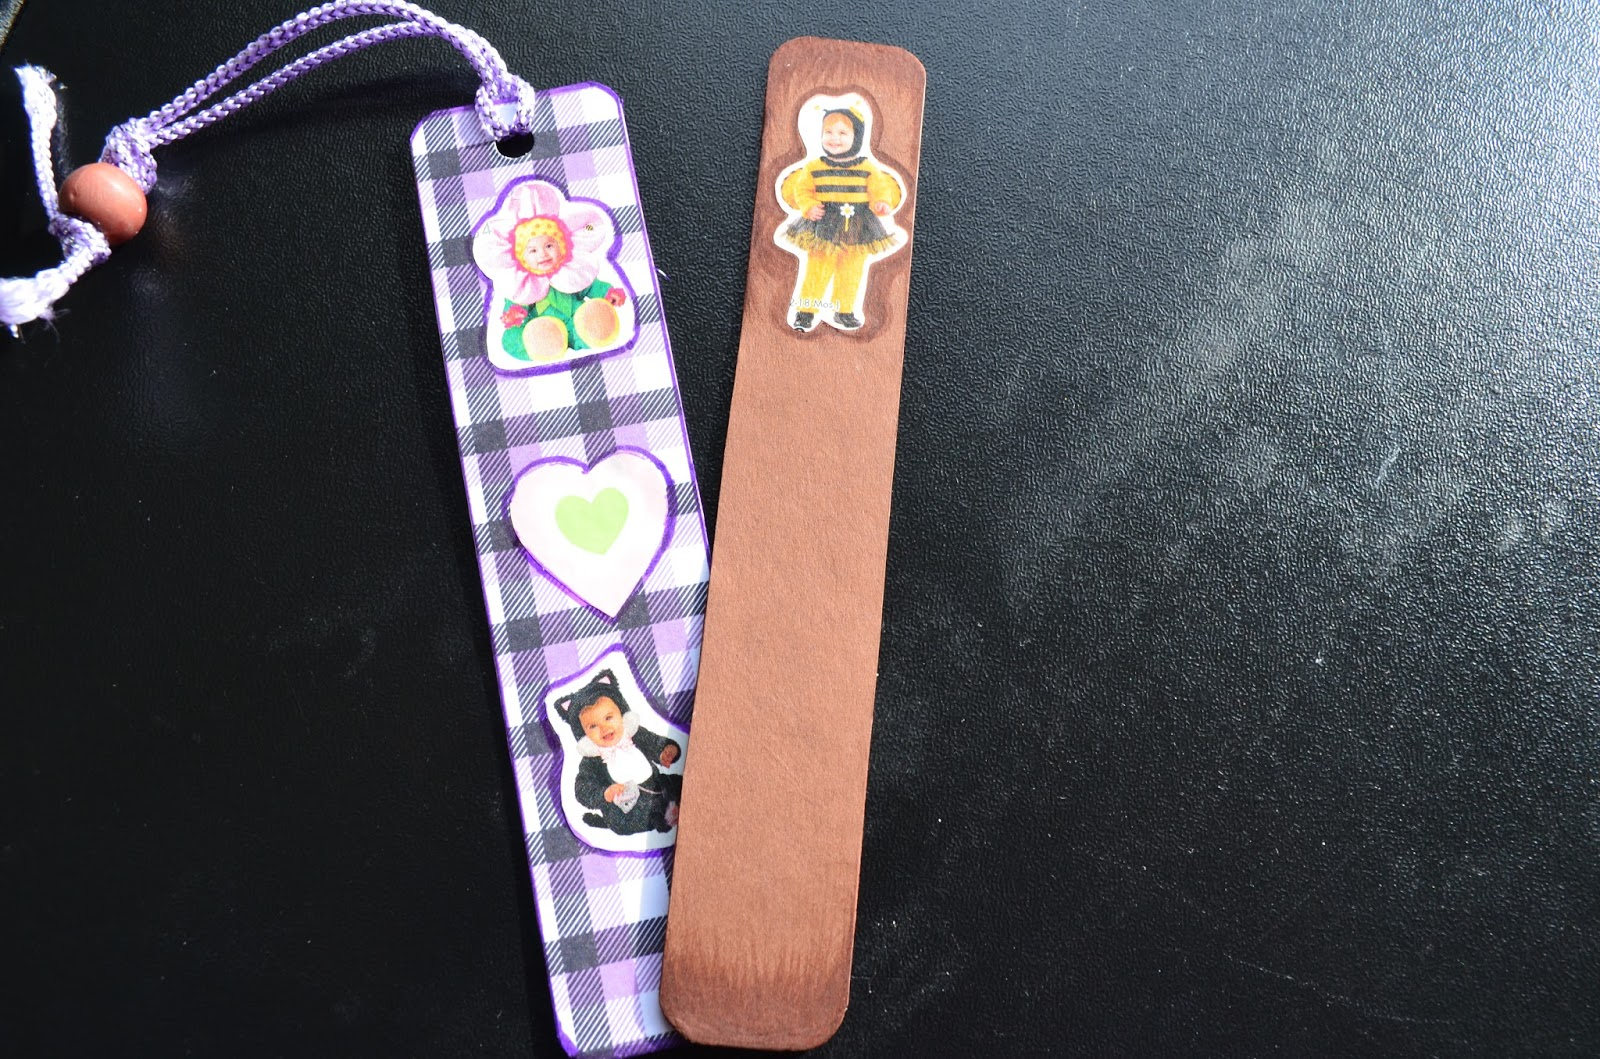 http://www.imprintshandmade.com/2012/11/cute-kiddy-costume-bookmarks.html